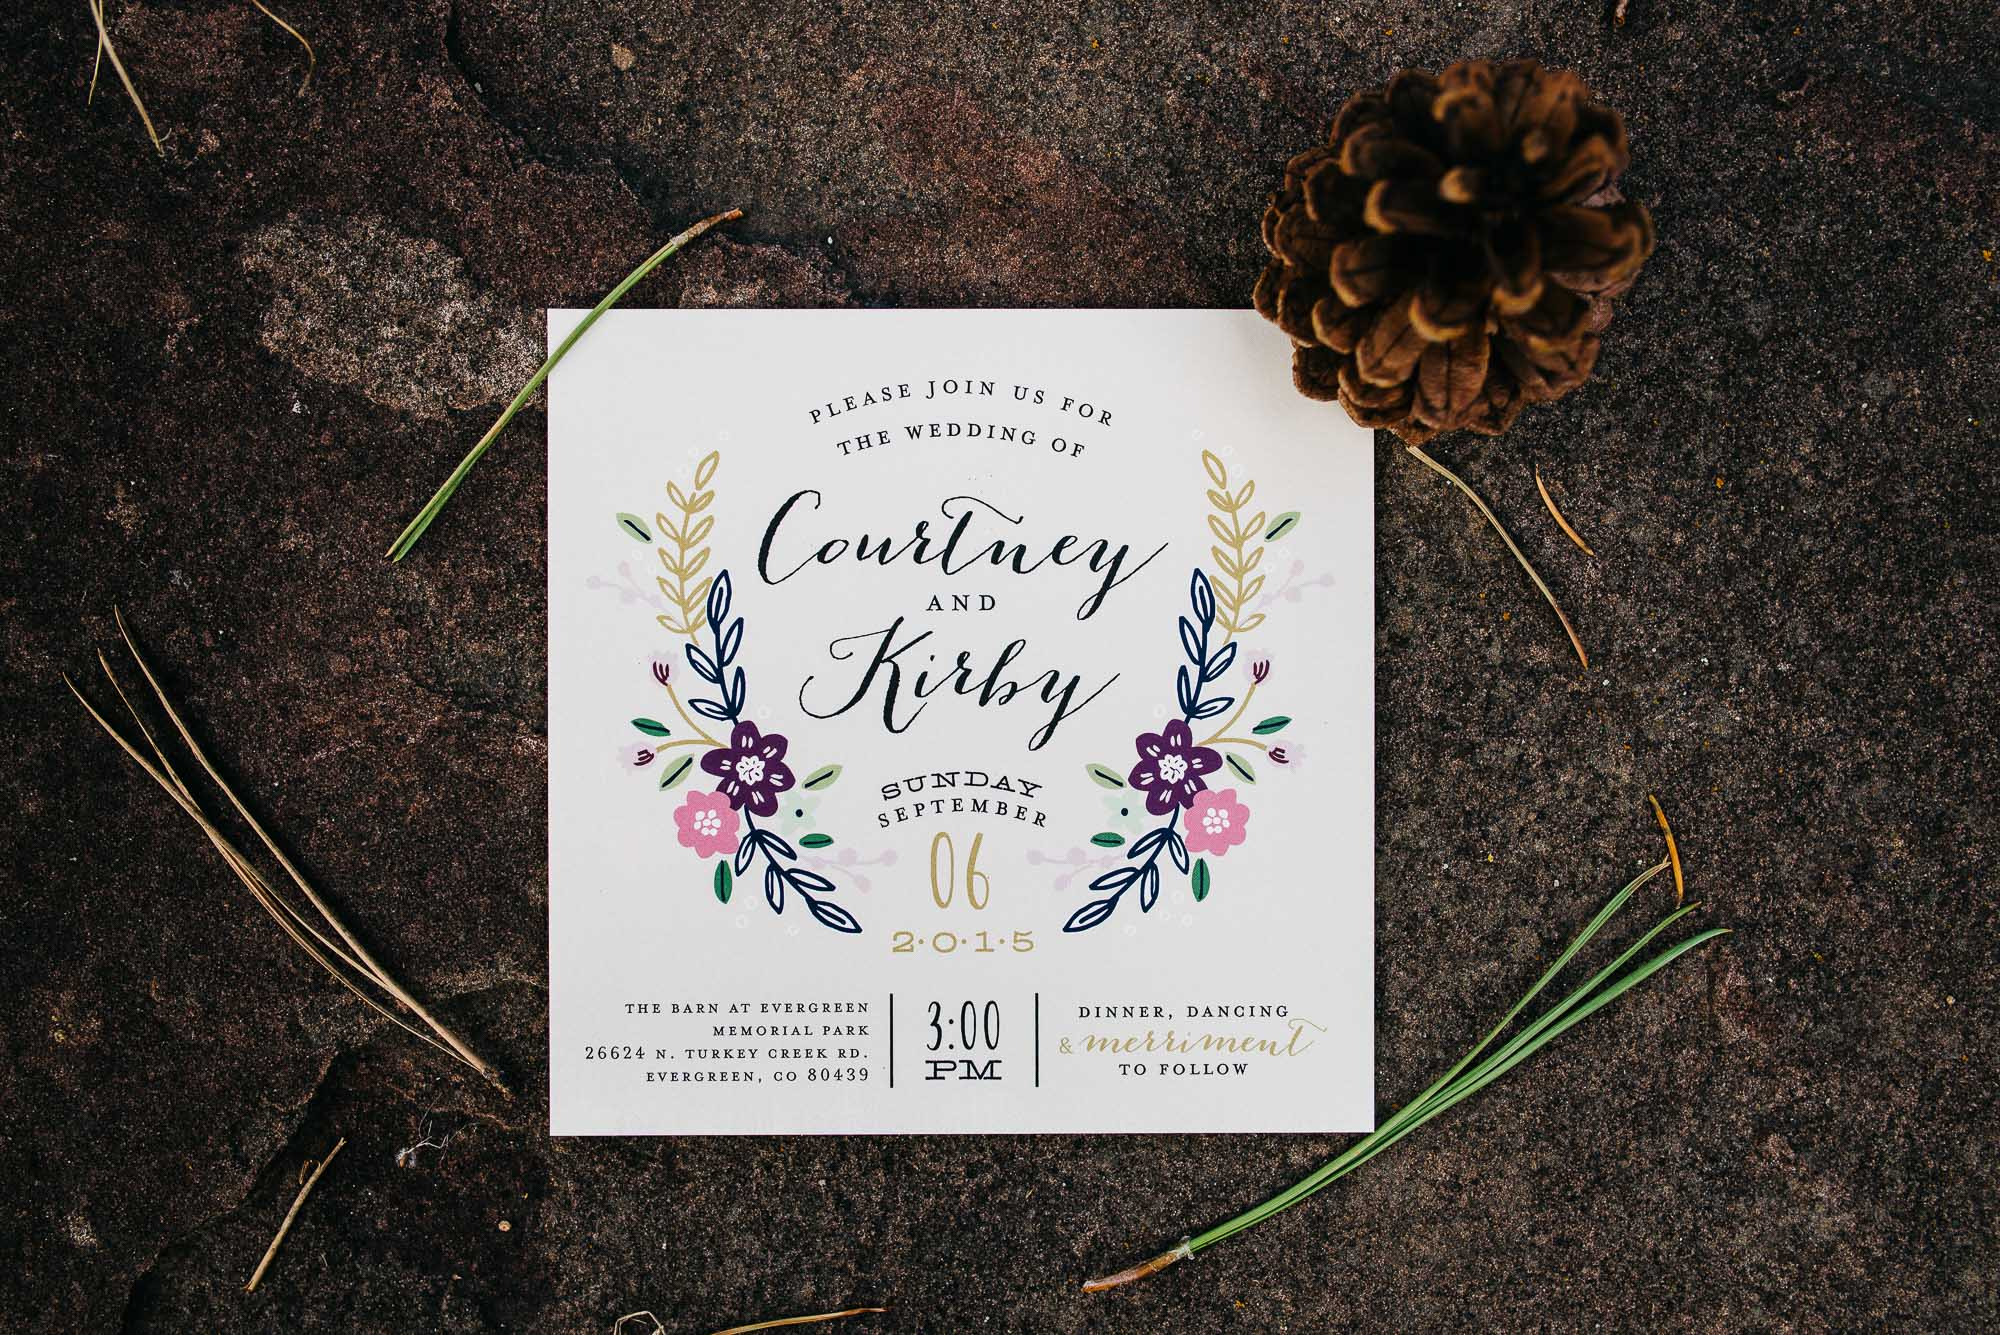 08branding-photographer-colorado-small-business-photographer-denver-brand-photographer_66branding-photographer-colorado-evergreen_barn_wedding_photos_mountain_wedding_photographer_courtney&kirby_0125.jpg